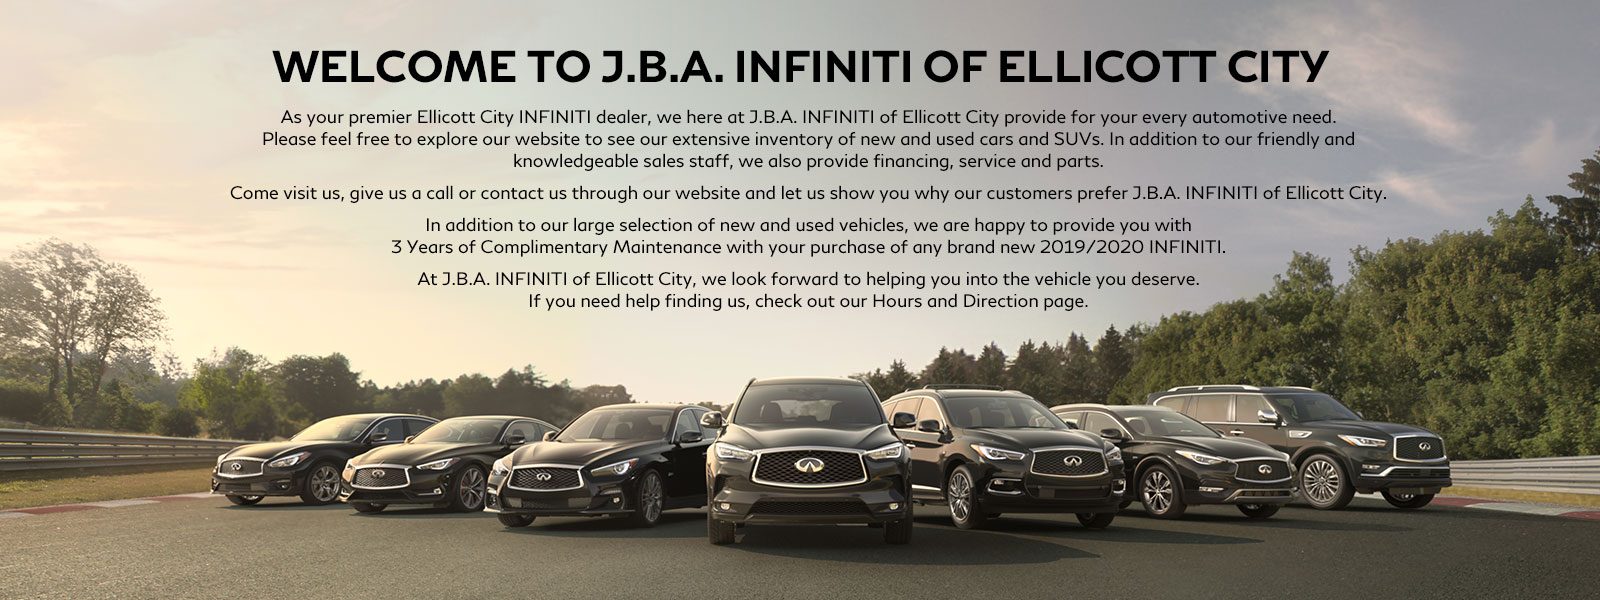 J B A  INFINITI OF ELLICOTT CITY - New & Used INFINITI